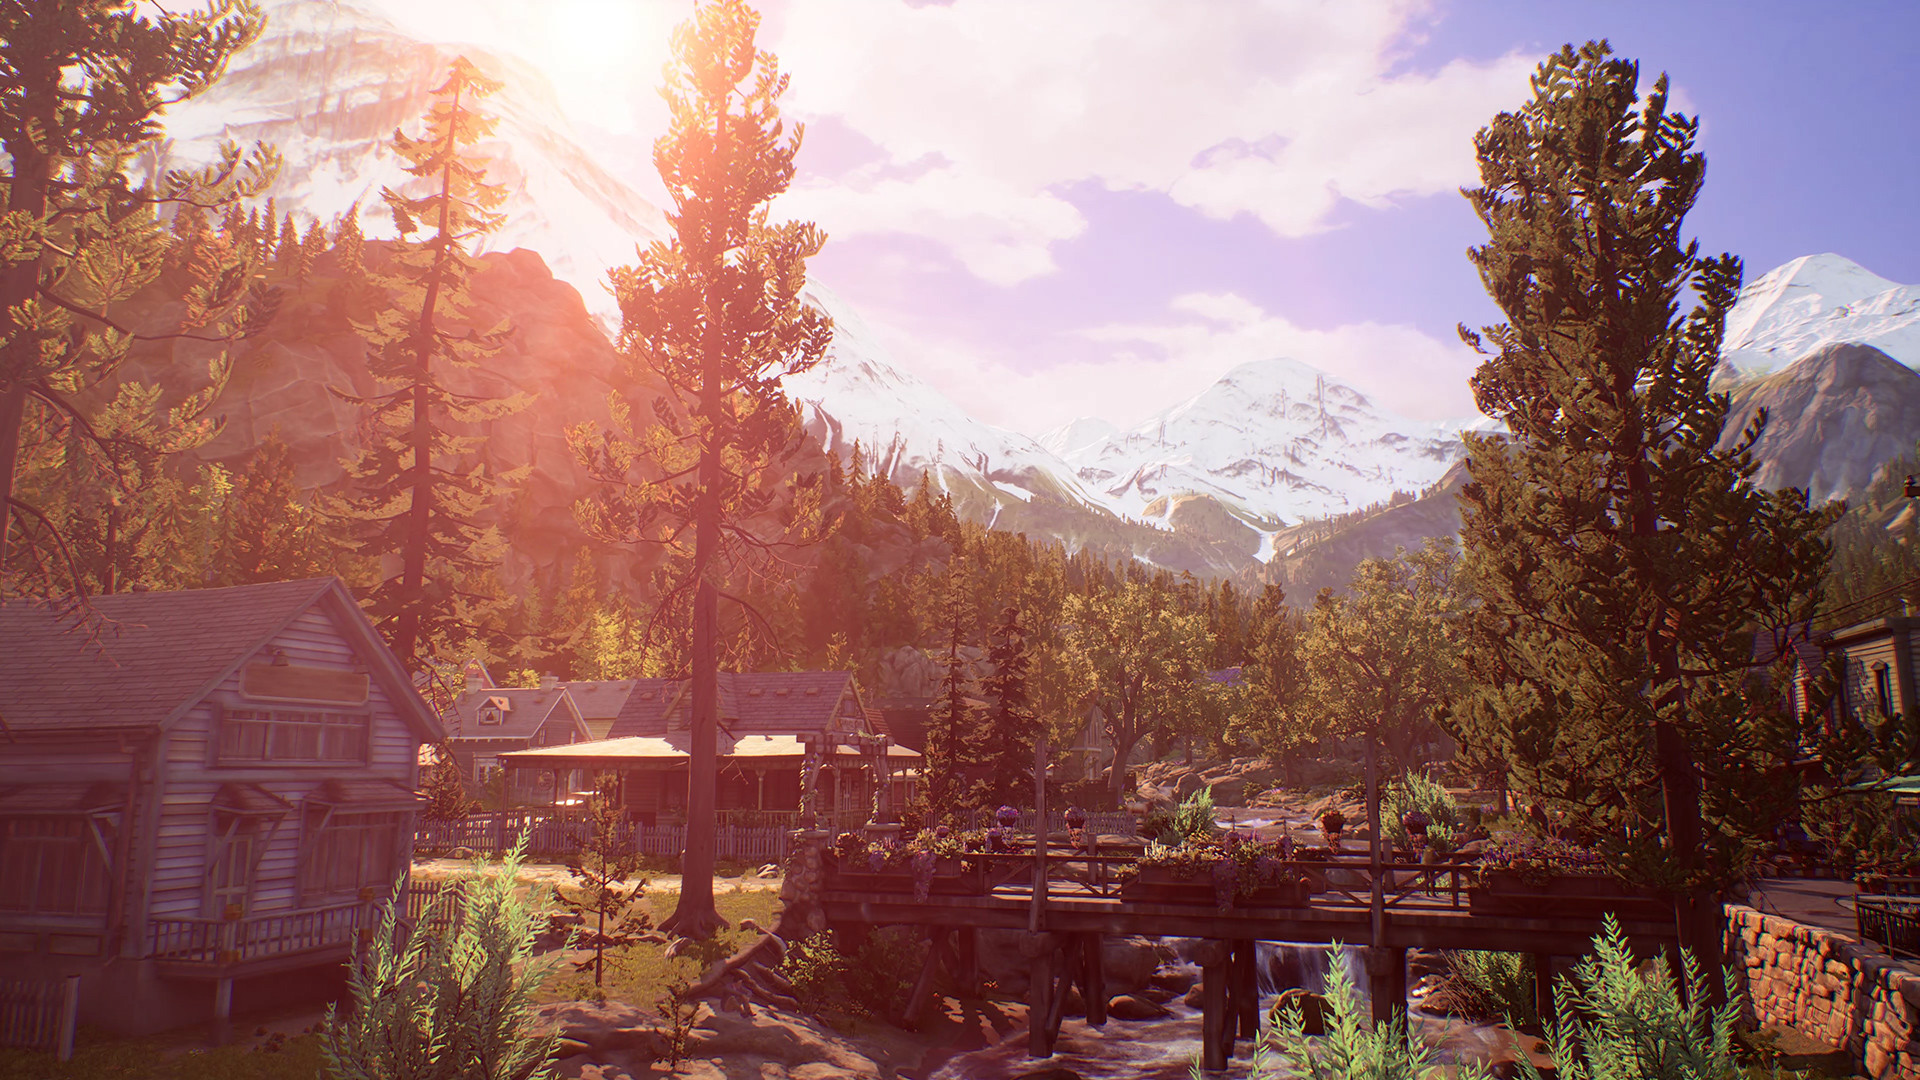 LIFE IS STRANGE: TRUE COLORS  download LIFE IS STRANGE: TRUE COLORS  download free LIFE IS STRANGE: TRUE COLORS  download free full version pc LIFE IS STRANGE: TRUE COLORS  download mod LIFE IS STRANGE: TRUE COLORS  download pc LIFE IS STRANGE: TRUE COLORS  download free version game setup LIFE IS STRANGE: TRUE COLORS  download 32 bit LIFE IS STRANGE: TRUE COLORS  download windows 10 LIFE IS STRANGE: TRUE COLORS  download compressed LIFE IS STRANGE: TRUE COLORS  download for pc windows 7 32 bit LIFE IS STRANGE: TRUE COLORS  download link LIFE IS STRANGE: TRUE COLORS  download windows 7 32 bit LIFE IS STRANGE: TRUE COLORS  download 2021 LIFE IS STRANGE: TRUE COLORS  download pc windows 7 LIFE IS STRANGE: TRUE COLORS  download for pc highly compressed LIFE IS STRANGE: TRUE COLORS  download key LIFE IS STRANGE: TRUE COLORS  download pc windows 10 LIFE IS STRANGE: TRUE COLORS  download setup